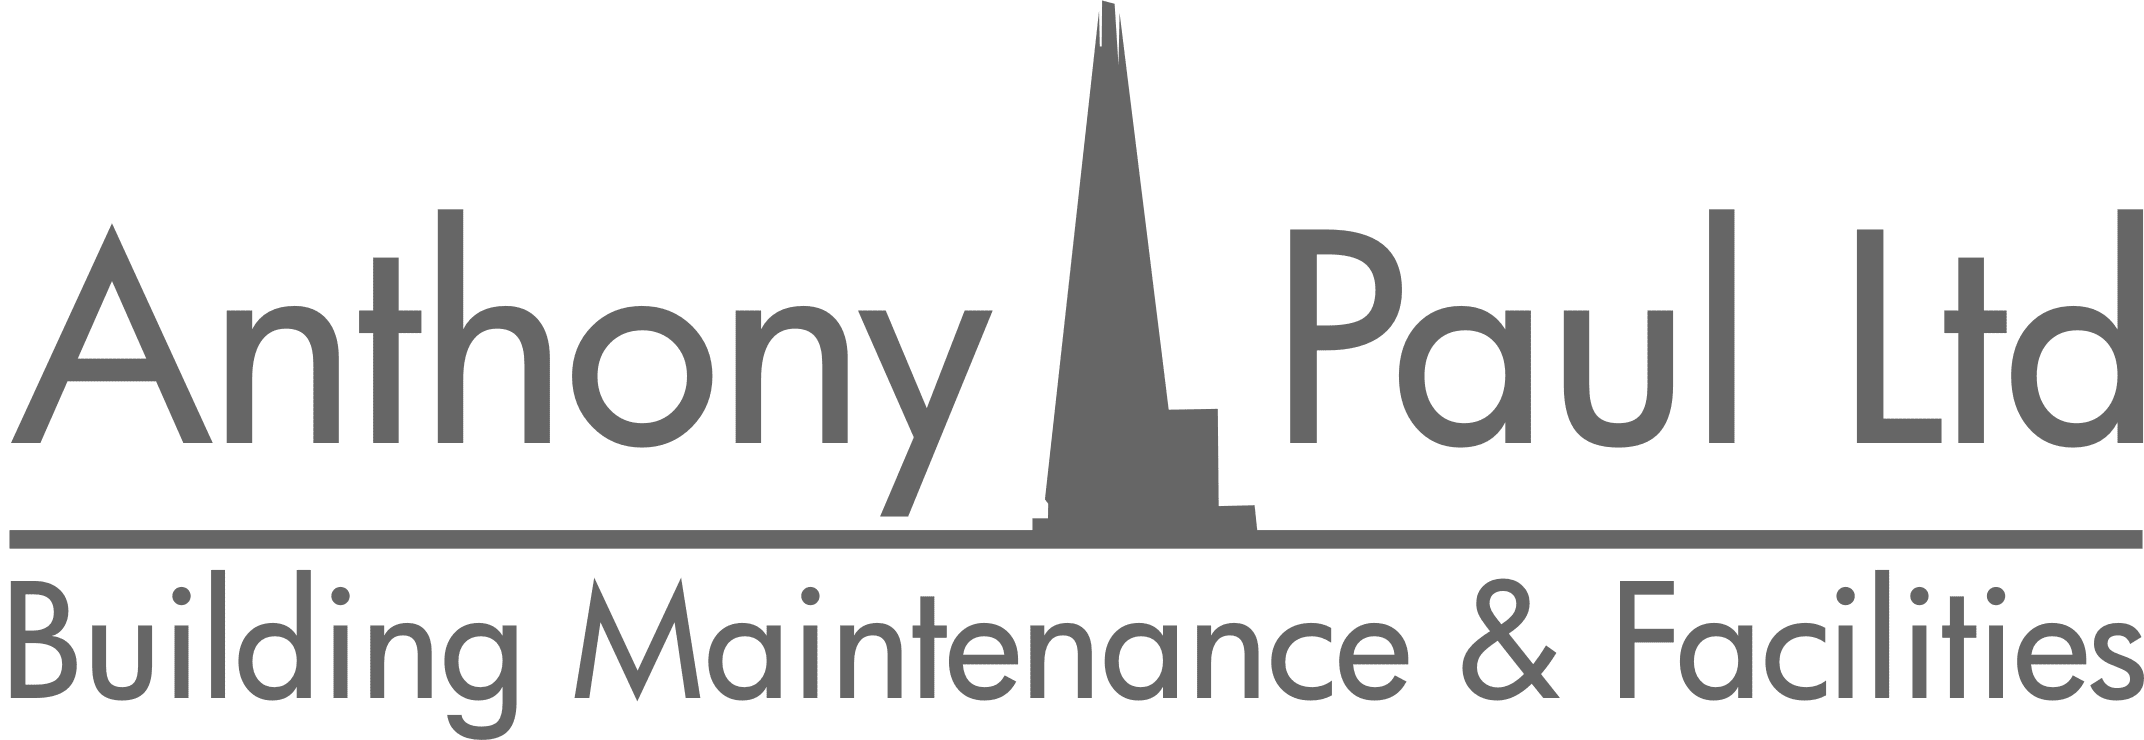 Anthony Paul Maintenance Ltd